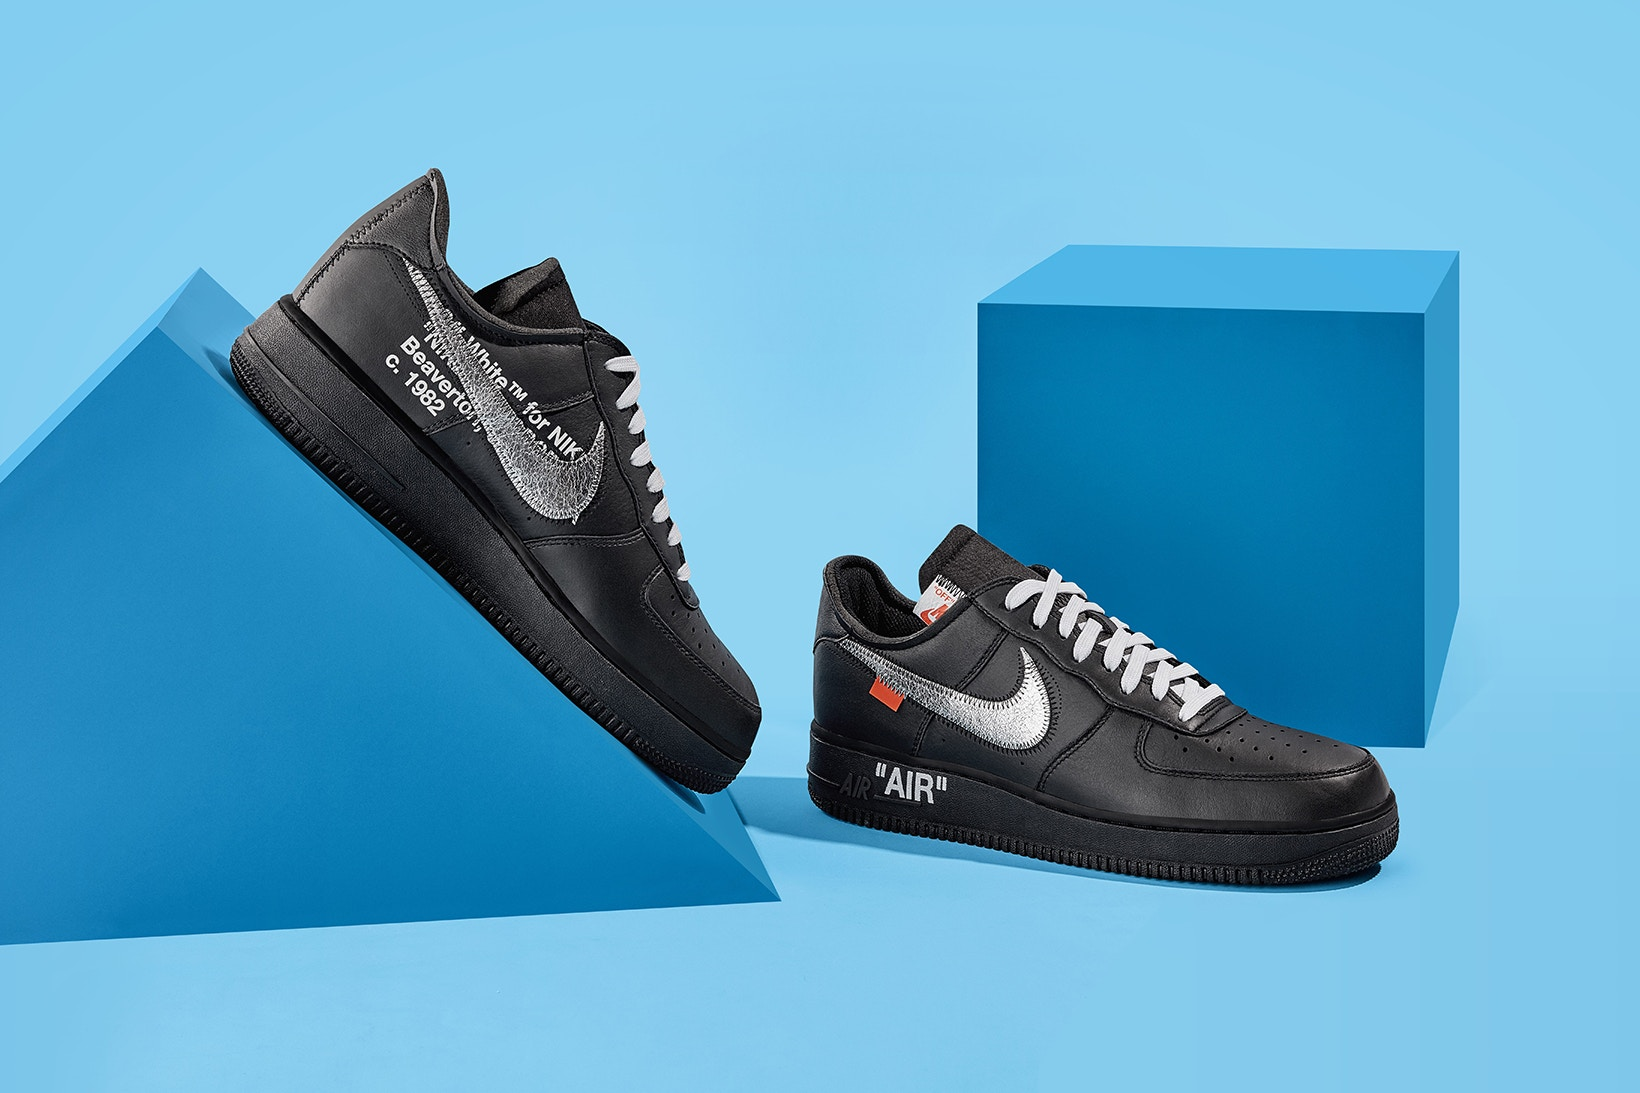 Foto ufficiali: Off White X Nike Air Force 1 MoMA Sneaker